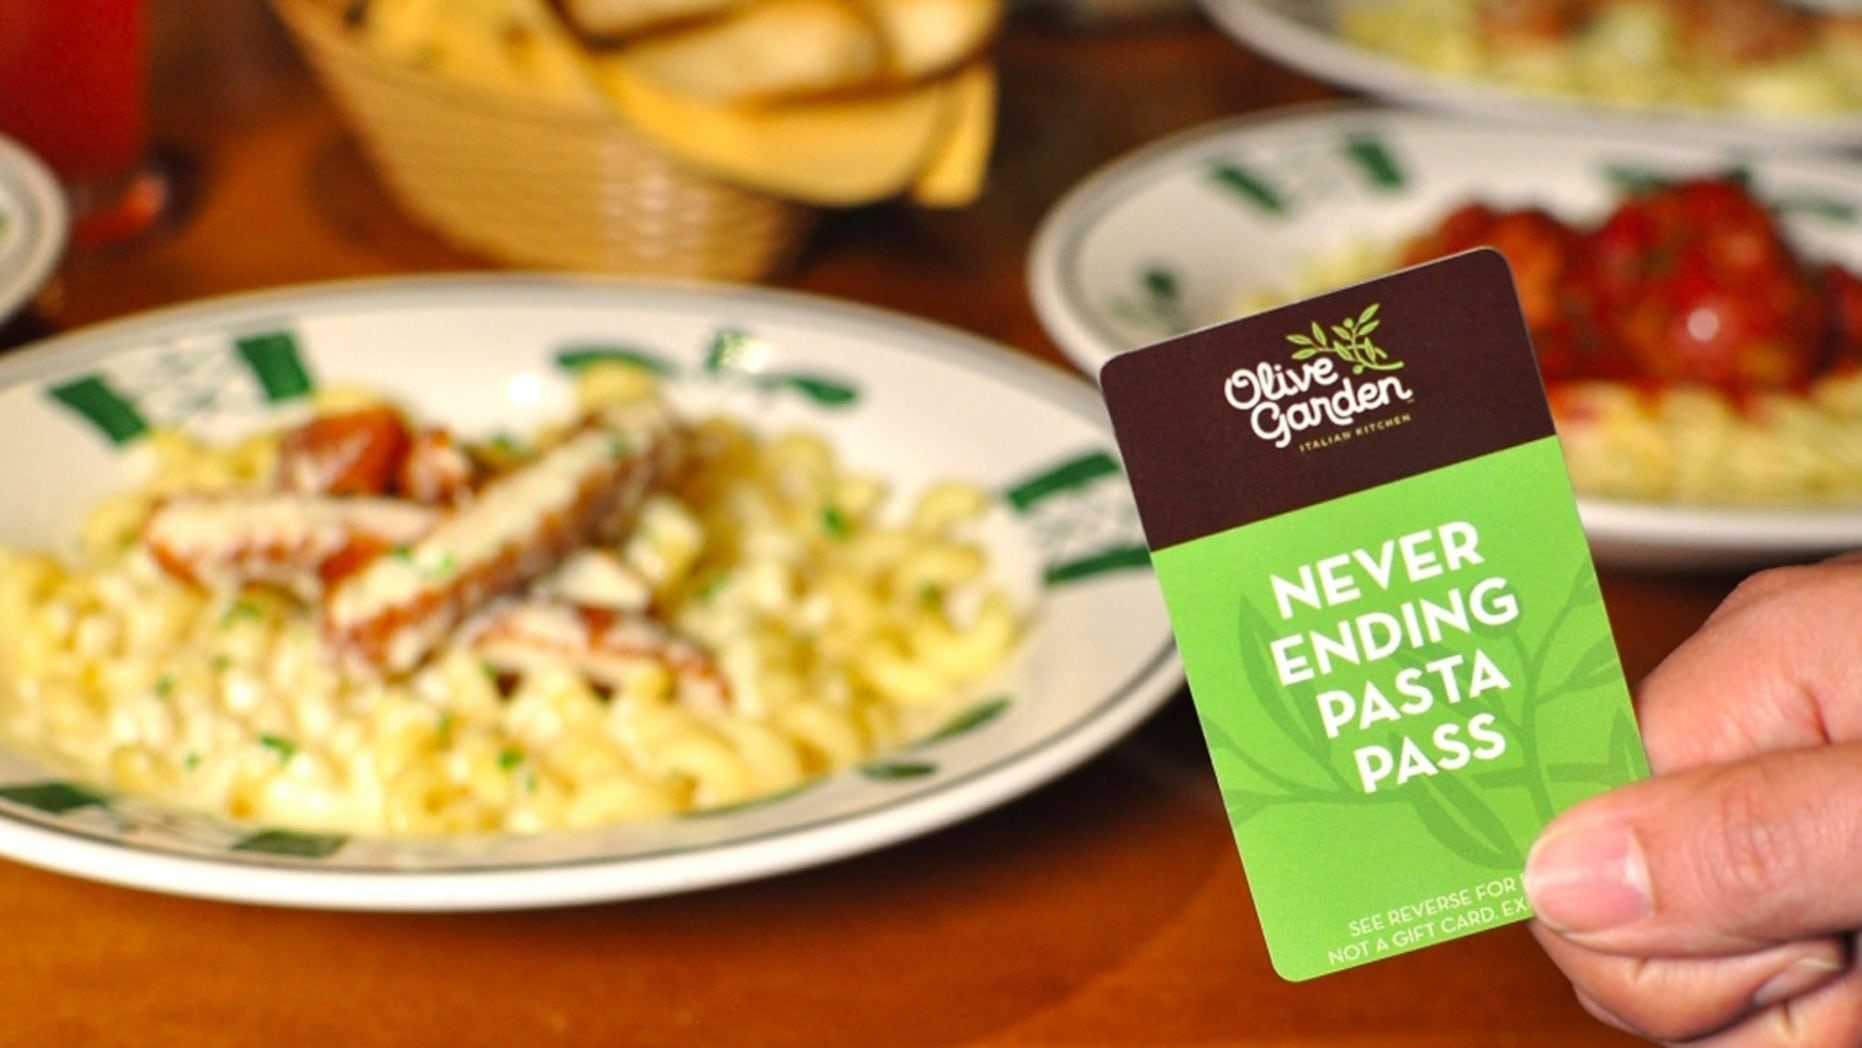 For the second year in a row, Olive Garden almost immediately sold passes that gave customers access to never-ending pasta, salad, bread sticks and soda.